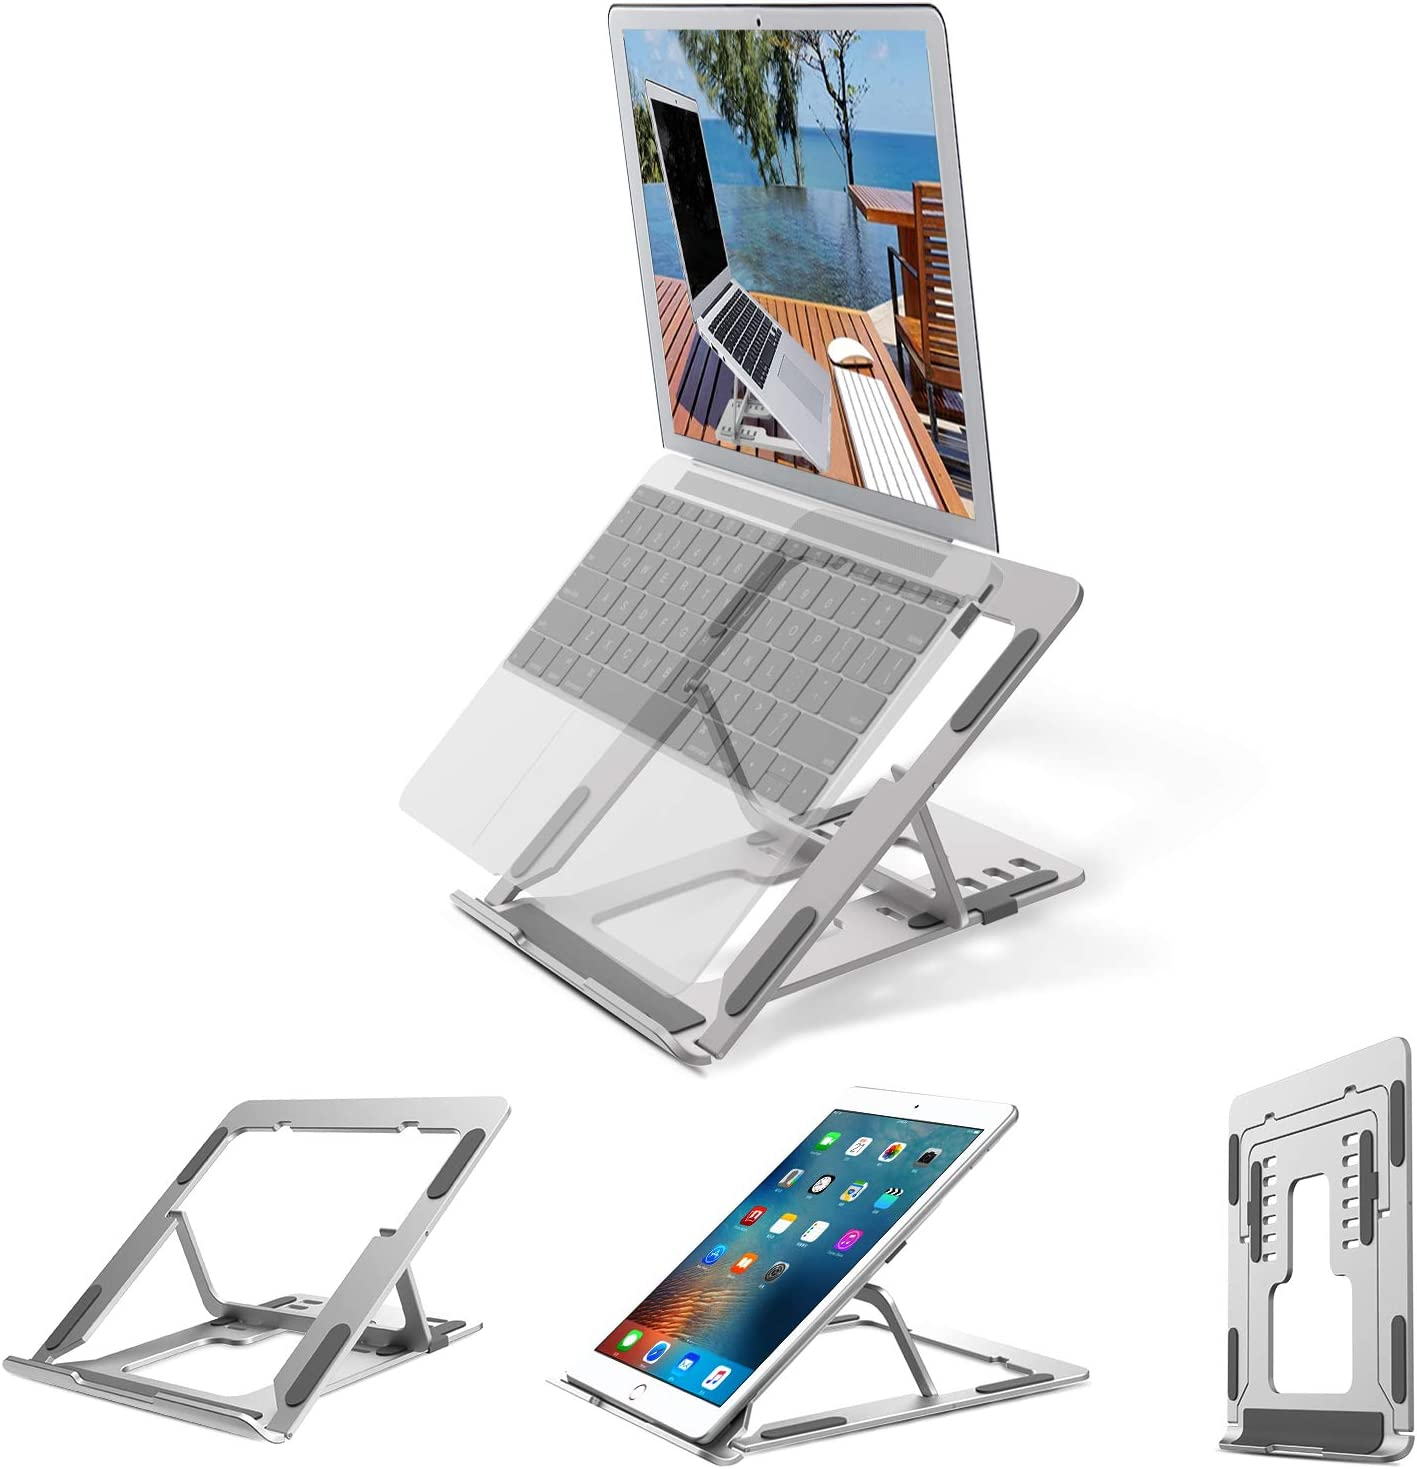 Tsuinz Fathers Day Gifts Laptop Stand Portable computer Stand for laptop Ergonomic MacBook Pro laptop riser for desk Foldable Aluminum alloy lap Holder for bed Compatible with Dell XPS,HP